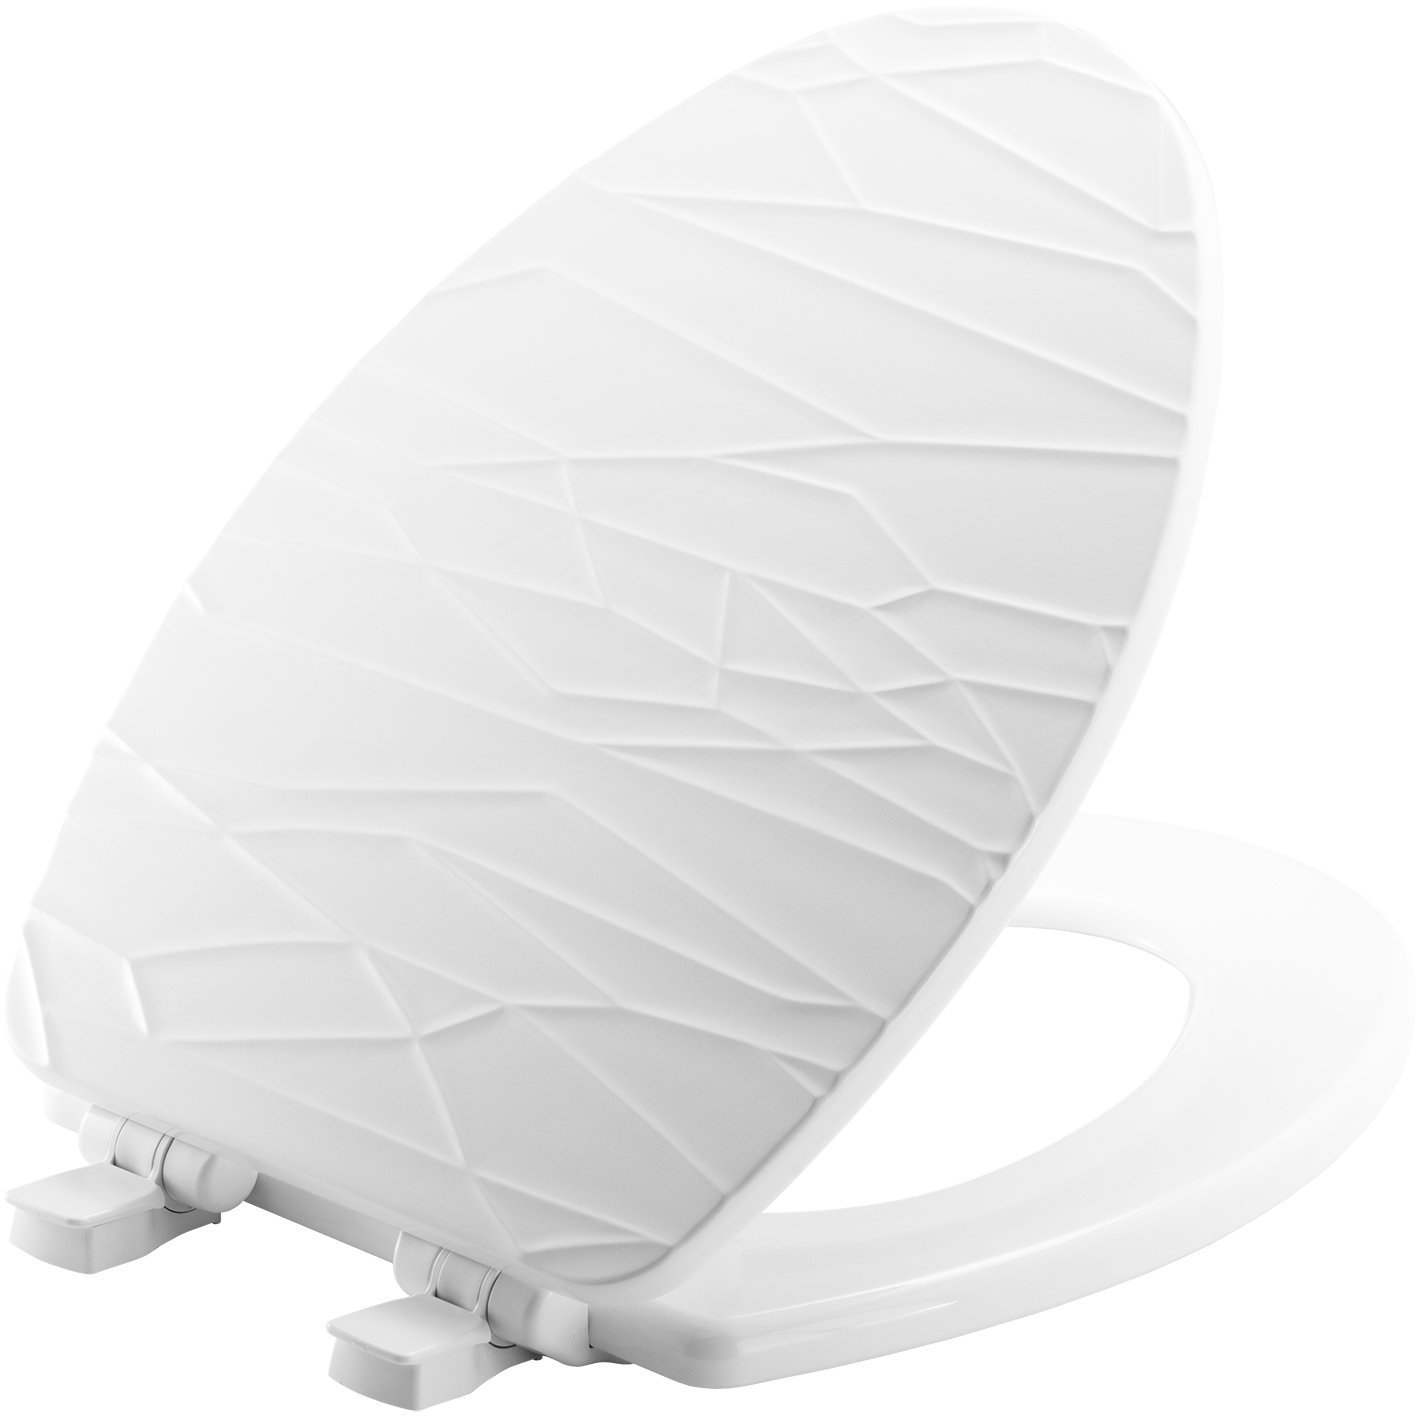 Mayfair Modern Geometric Sculptured Molded Wood Toilet Seat Featuring Slow-Close, Easy Clean & Change Hinges and STA-TITE Seat Fastening System, Elongated, White, 137SLOW 000 by Mayfair